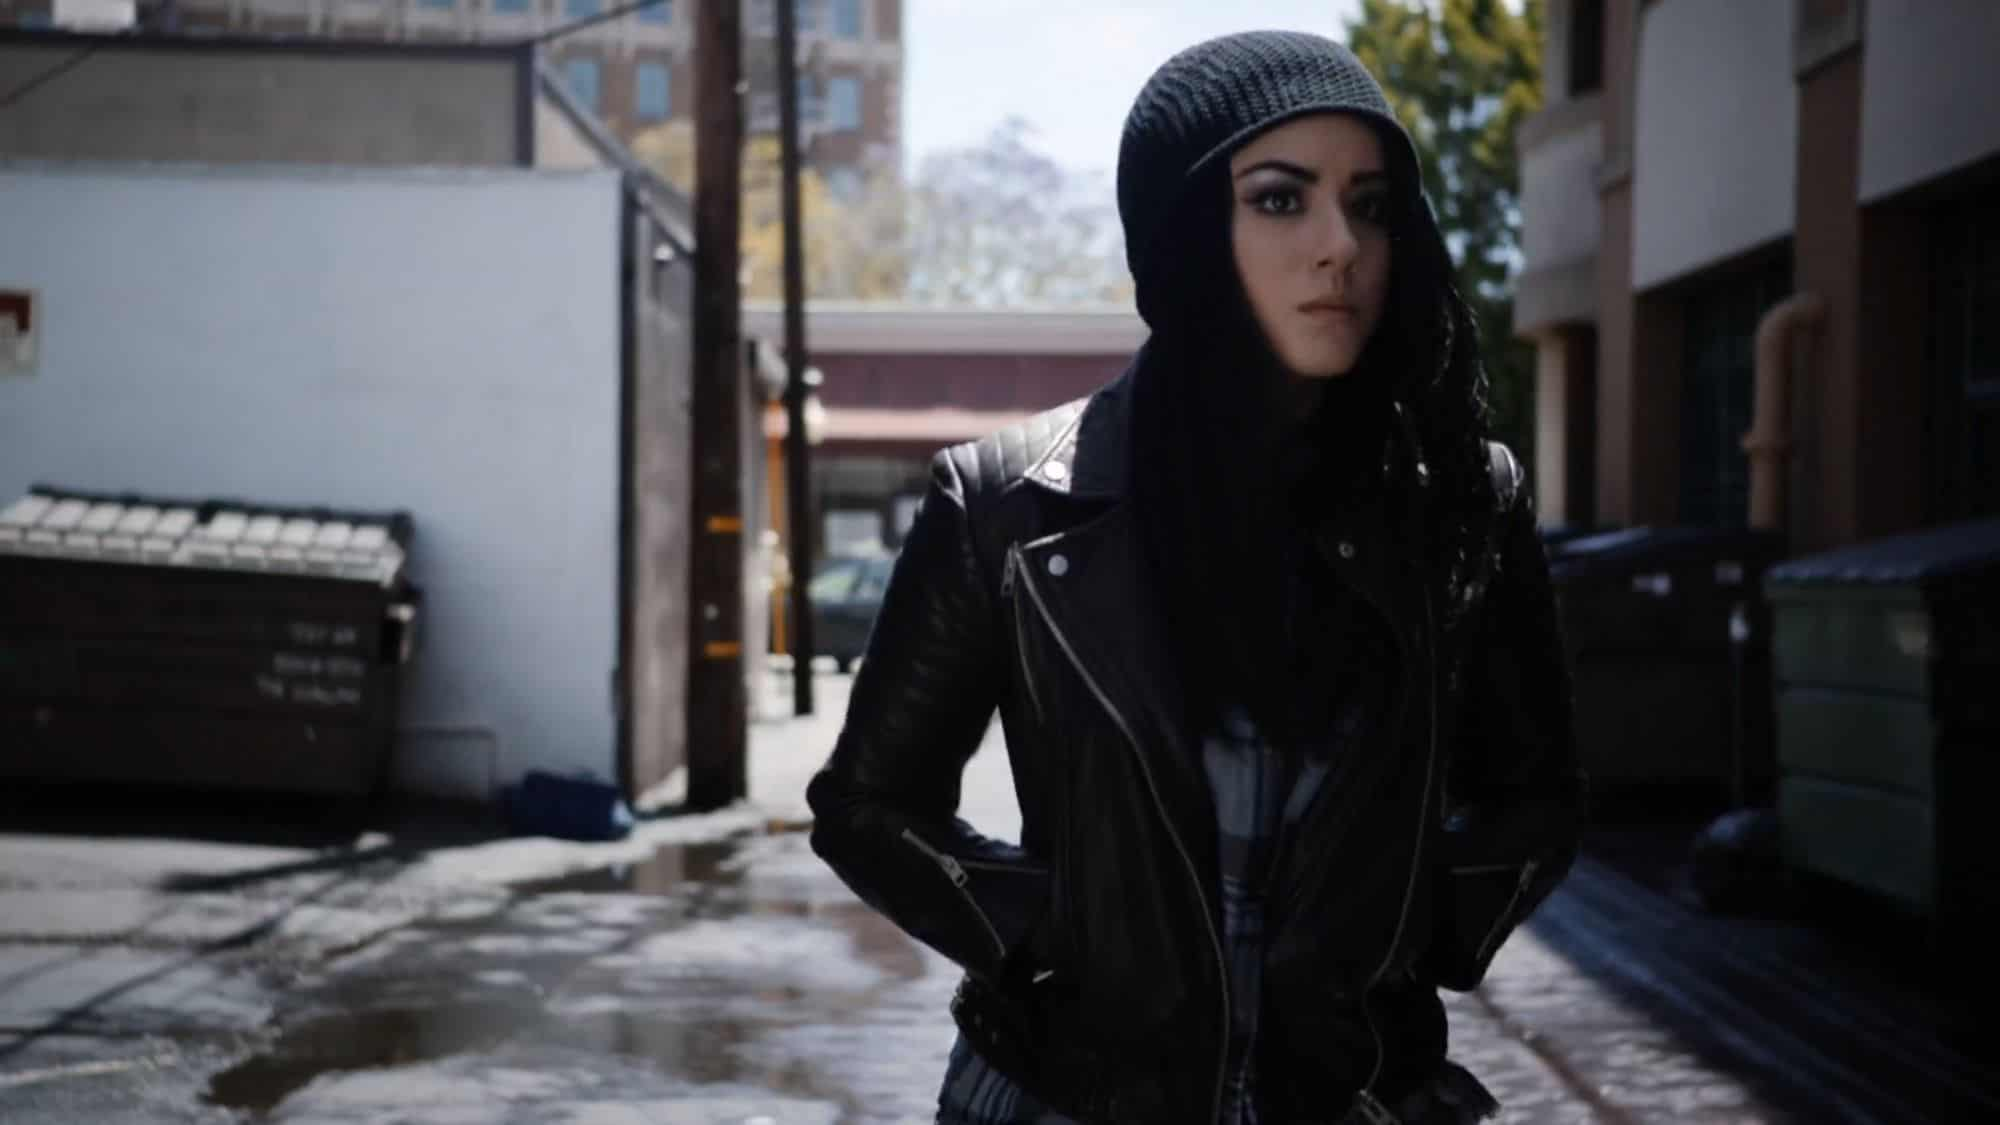 Marvels Agents of SHIELD season 5 unveils brand new